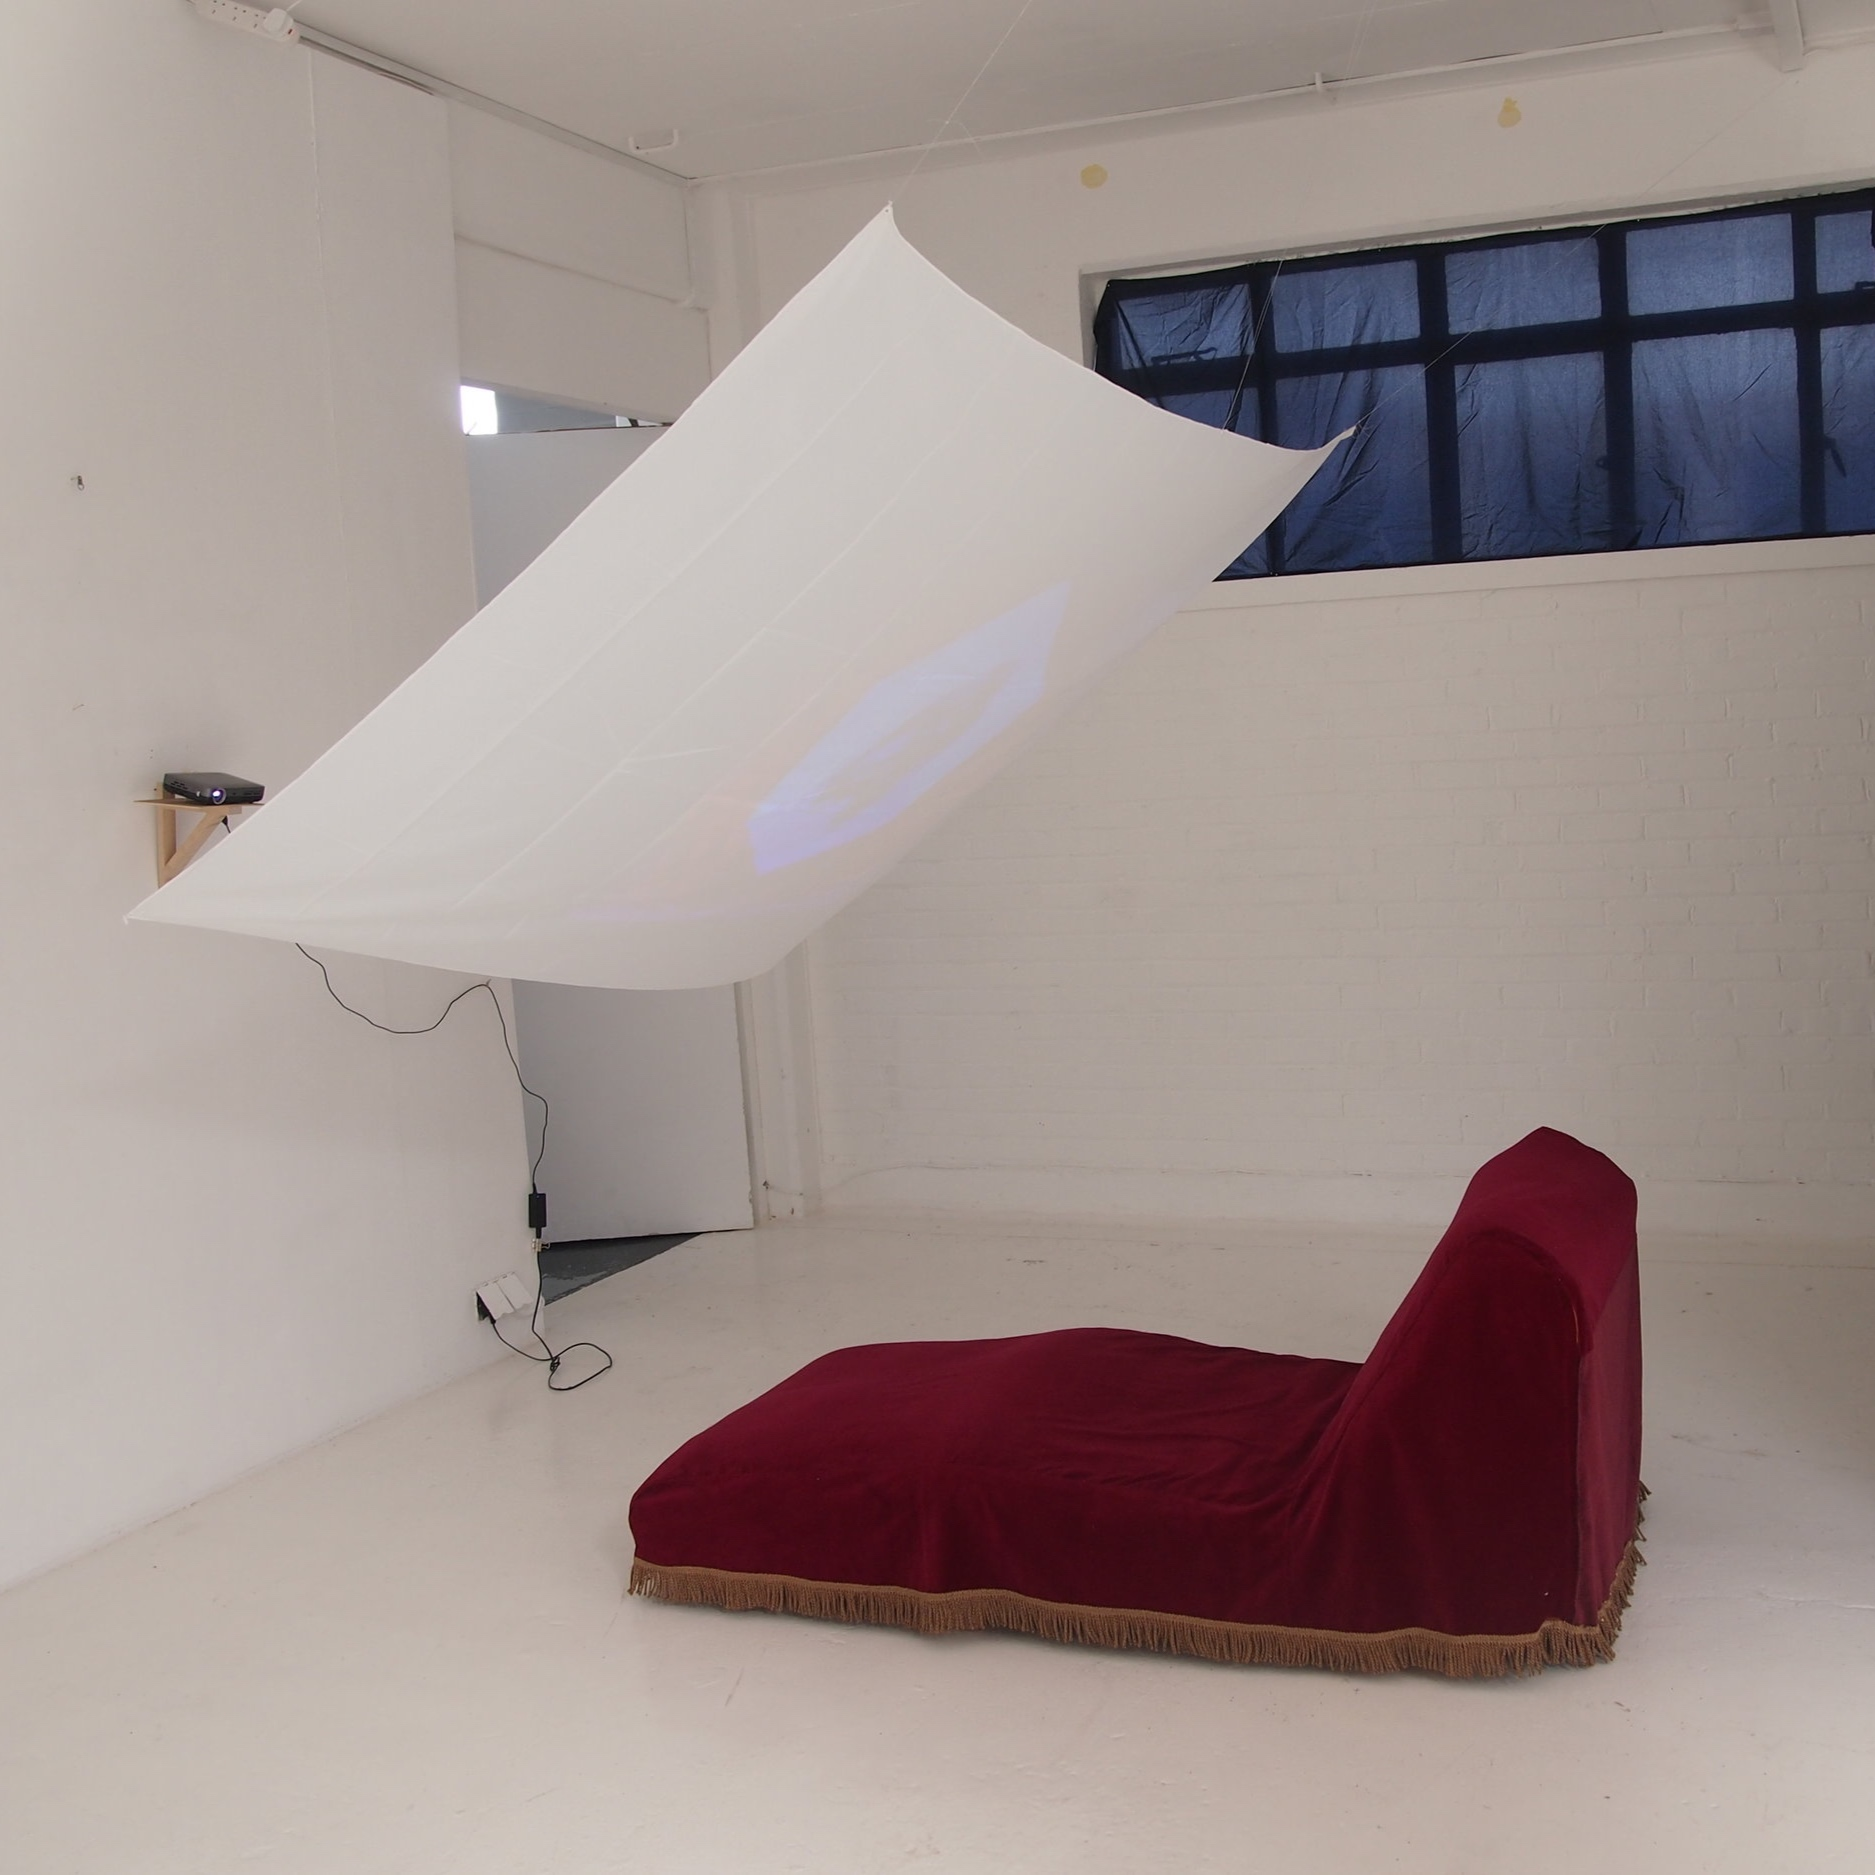 On The Couch  - installation test at KARST, May 2019